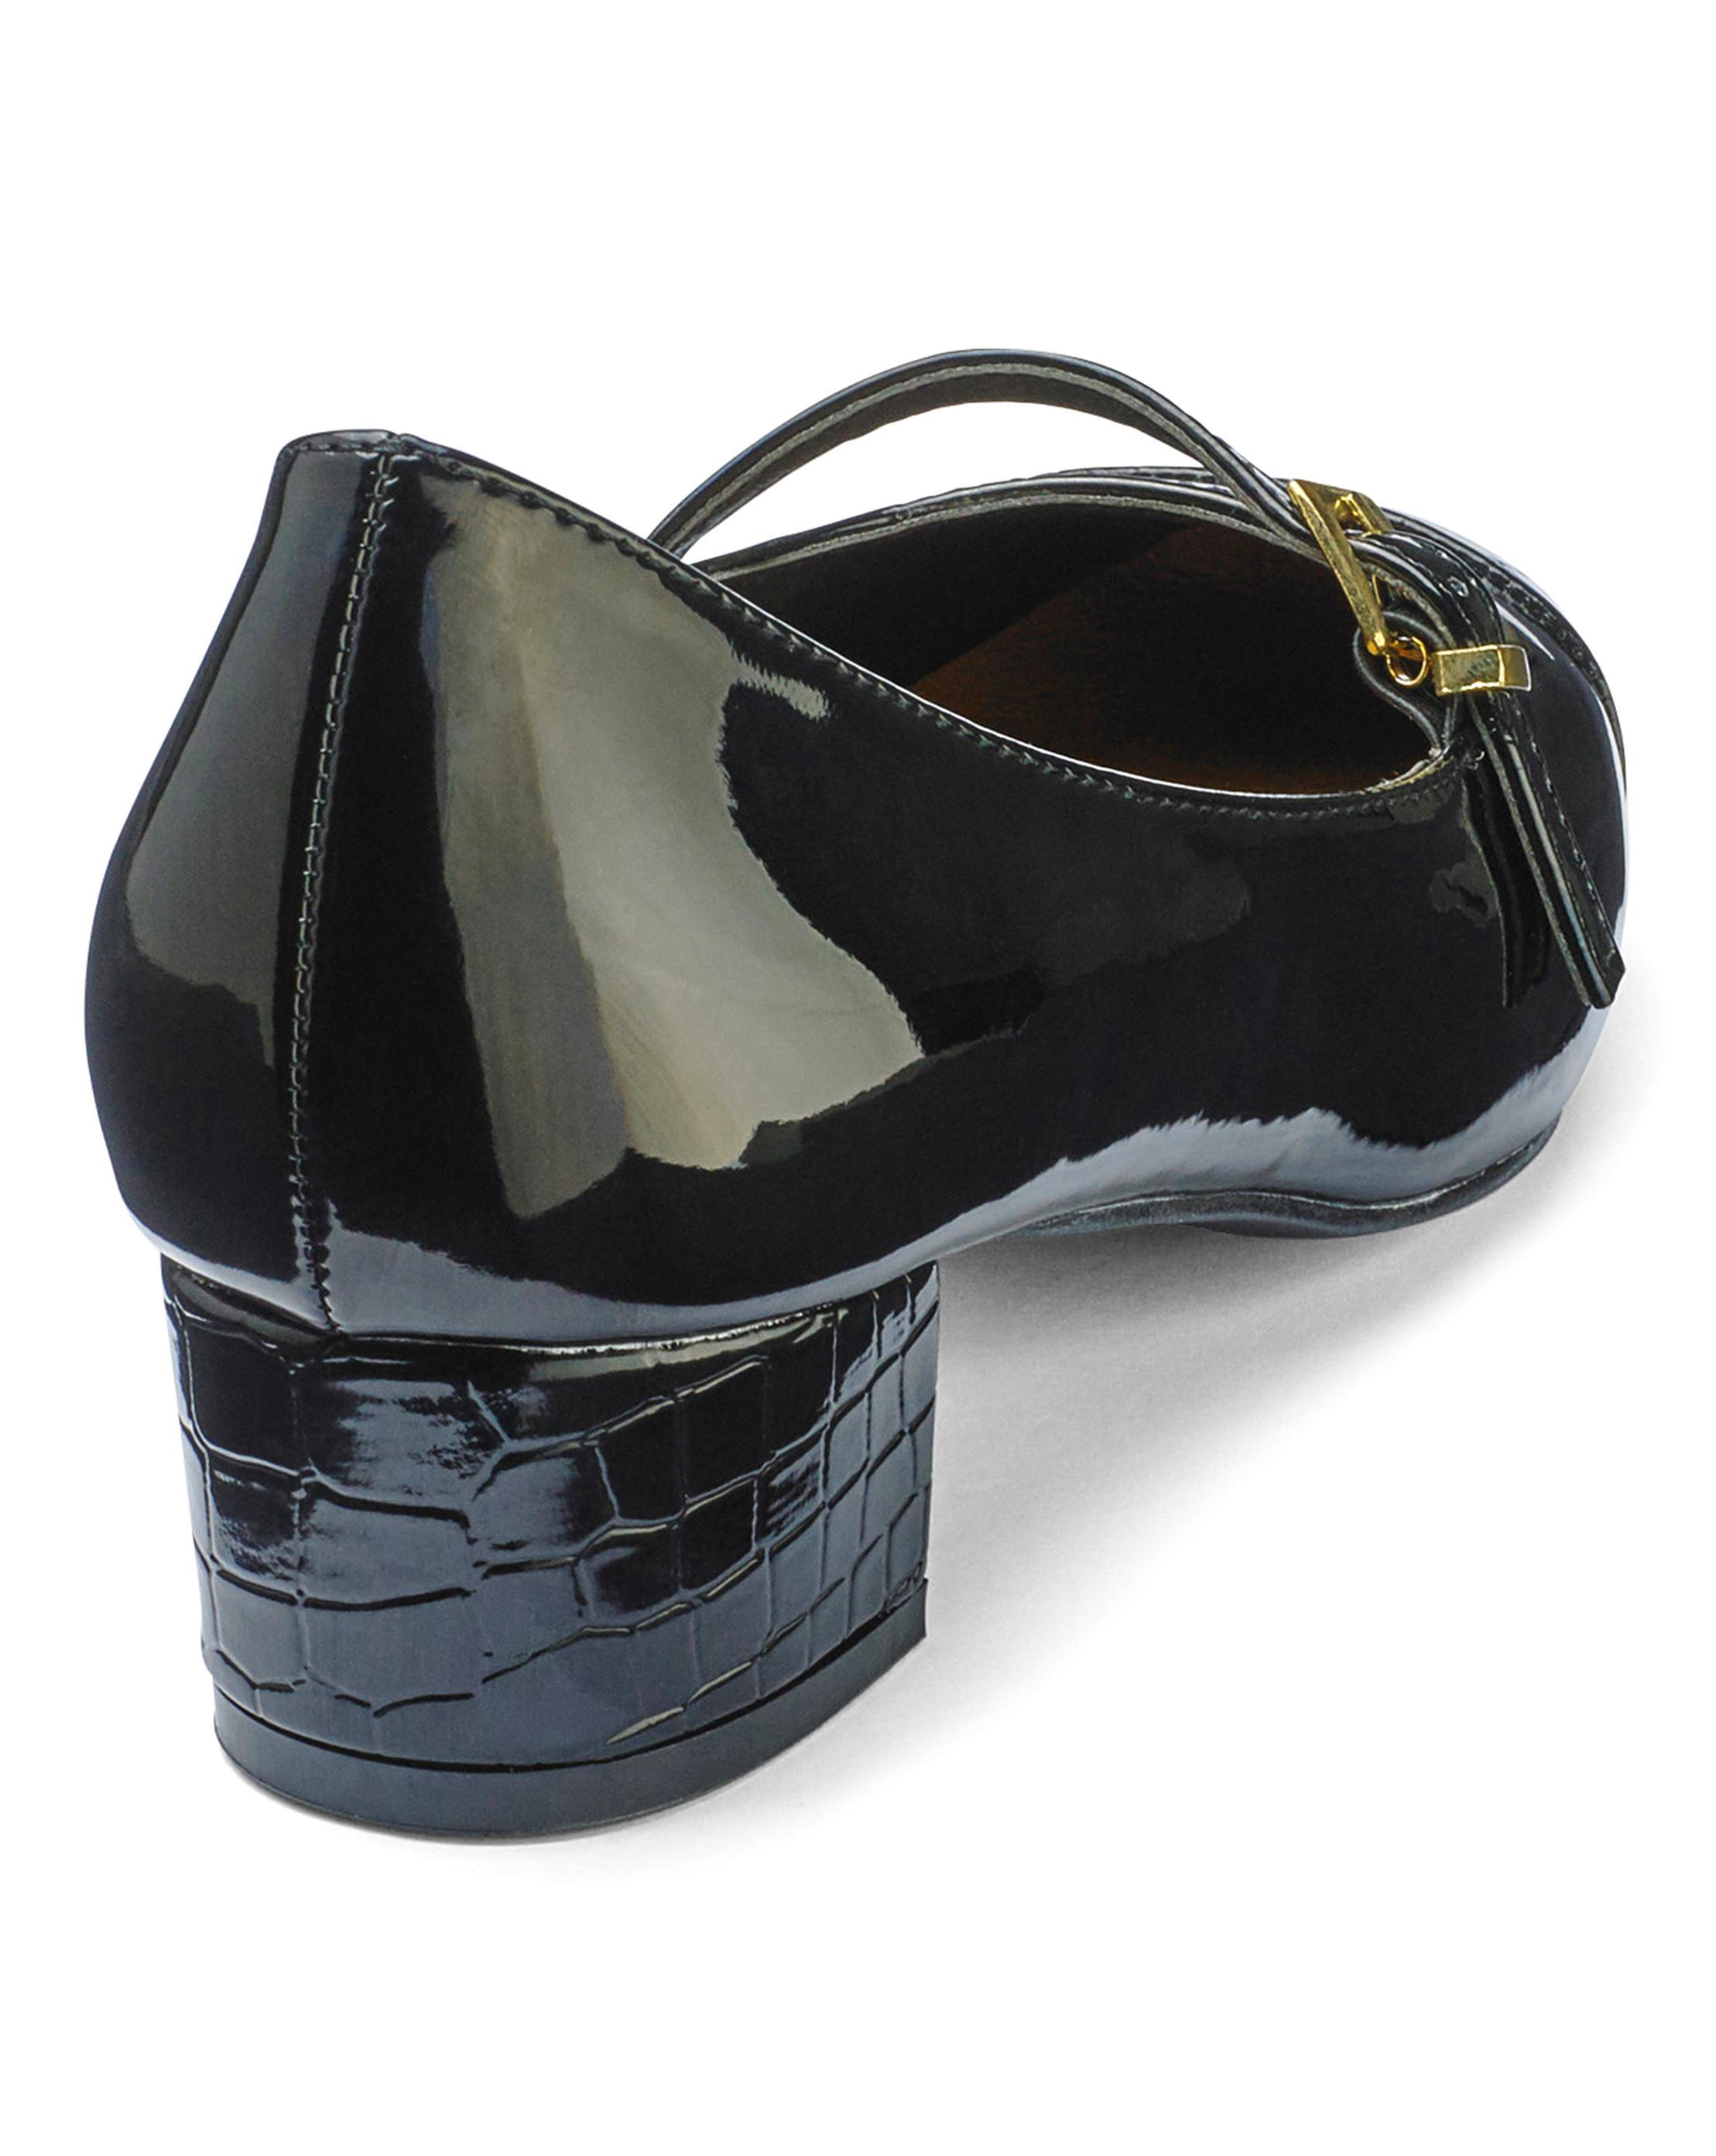 buy cheap cheap popular cheap price Heavenly Soles Single Mary Jane Shoes sHKhsBgy7